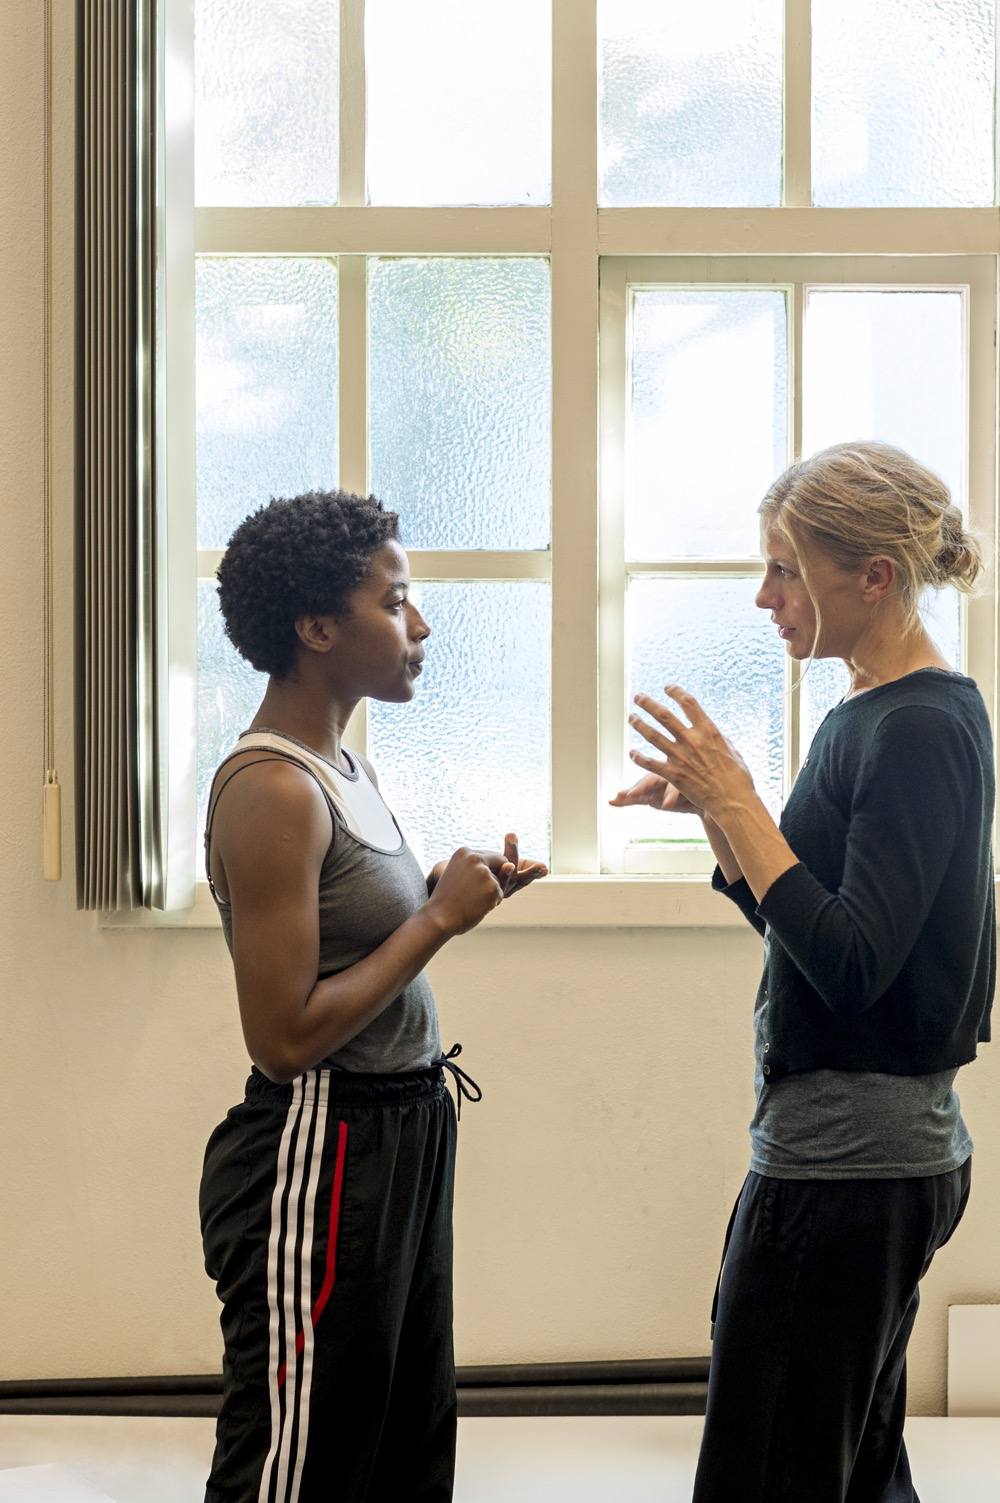 Dance Mentor Crystal Pite and Protégée Khoudia Touré During a Work Session (Photo by Rolex/Tina Ruisinger)